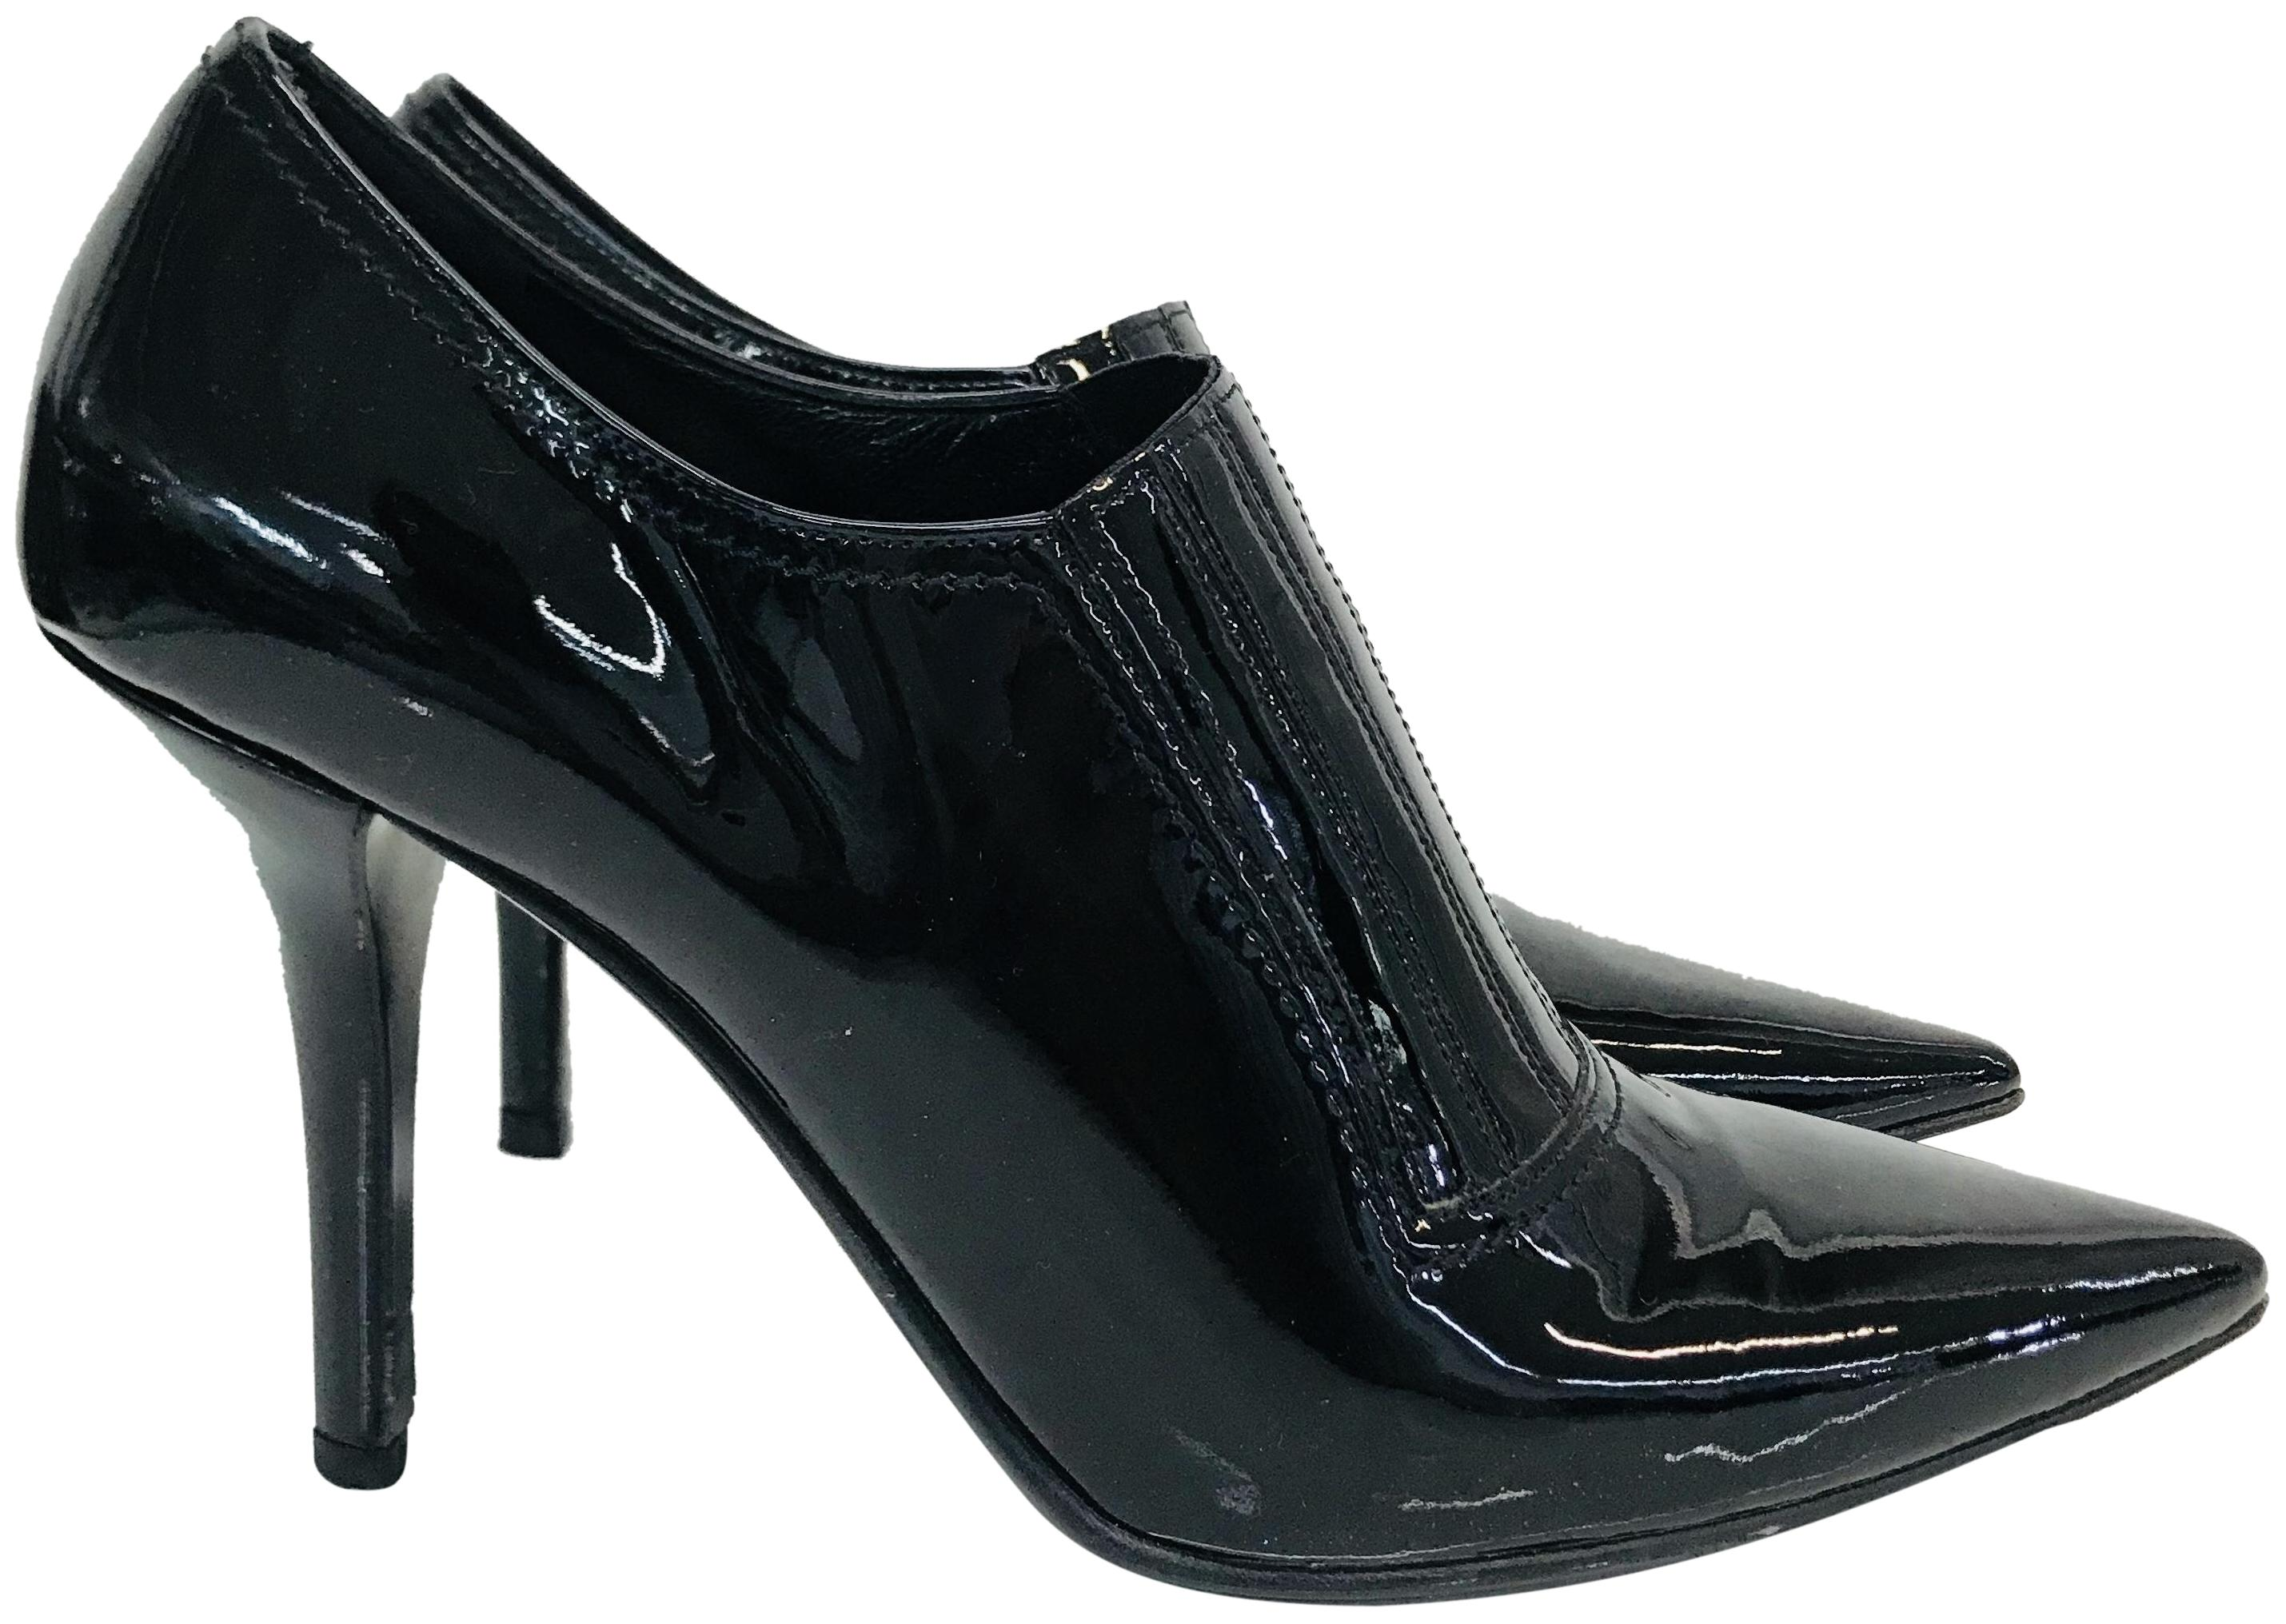 Valentino Black Patent Leather Slip On Ankle Boots/Booties Size EU 38 (Approx. US 8) Regular (M, B)